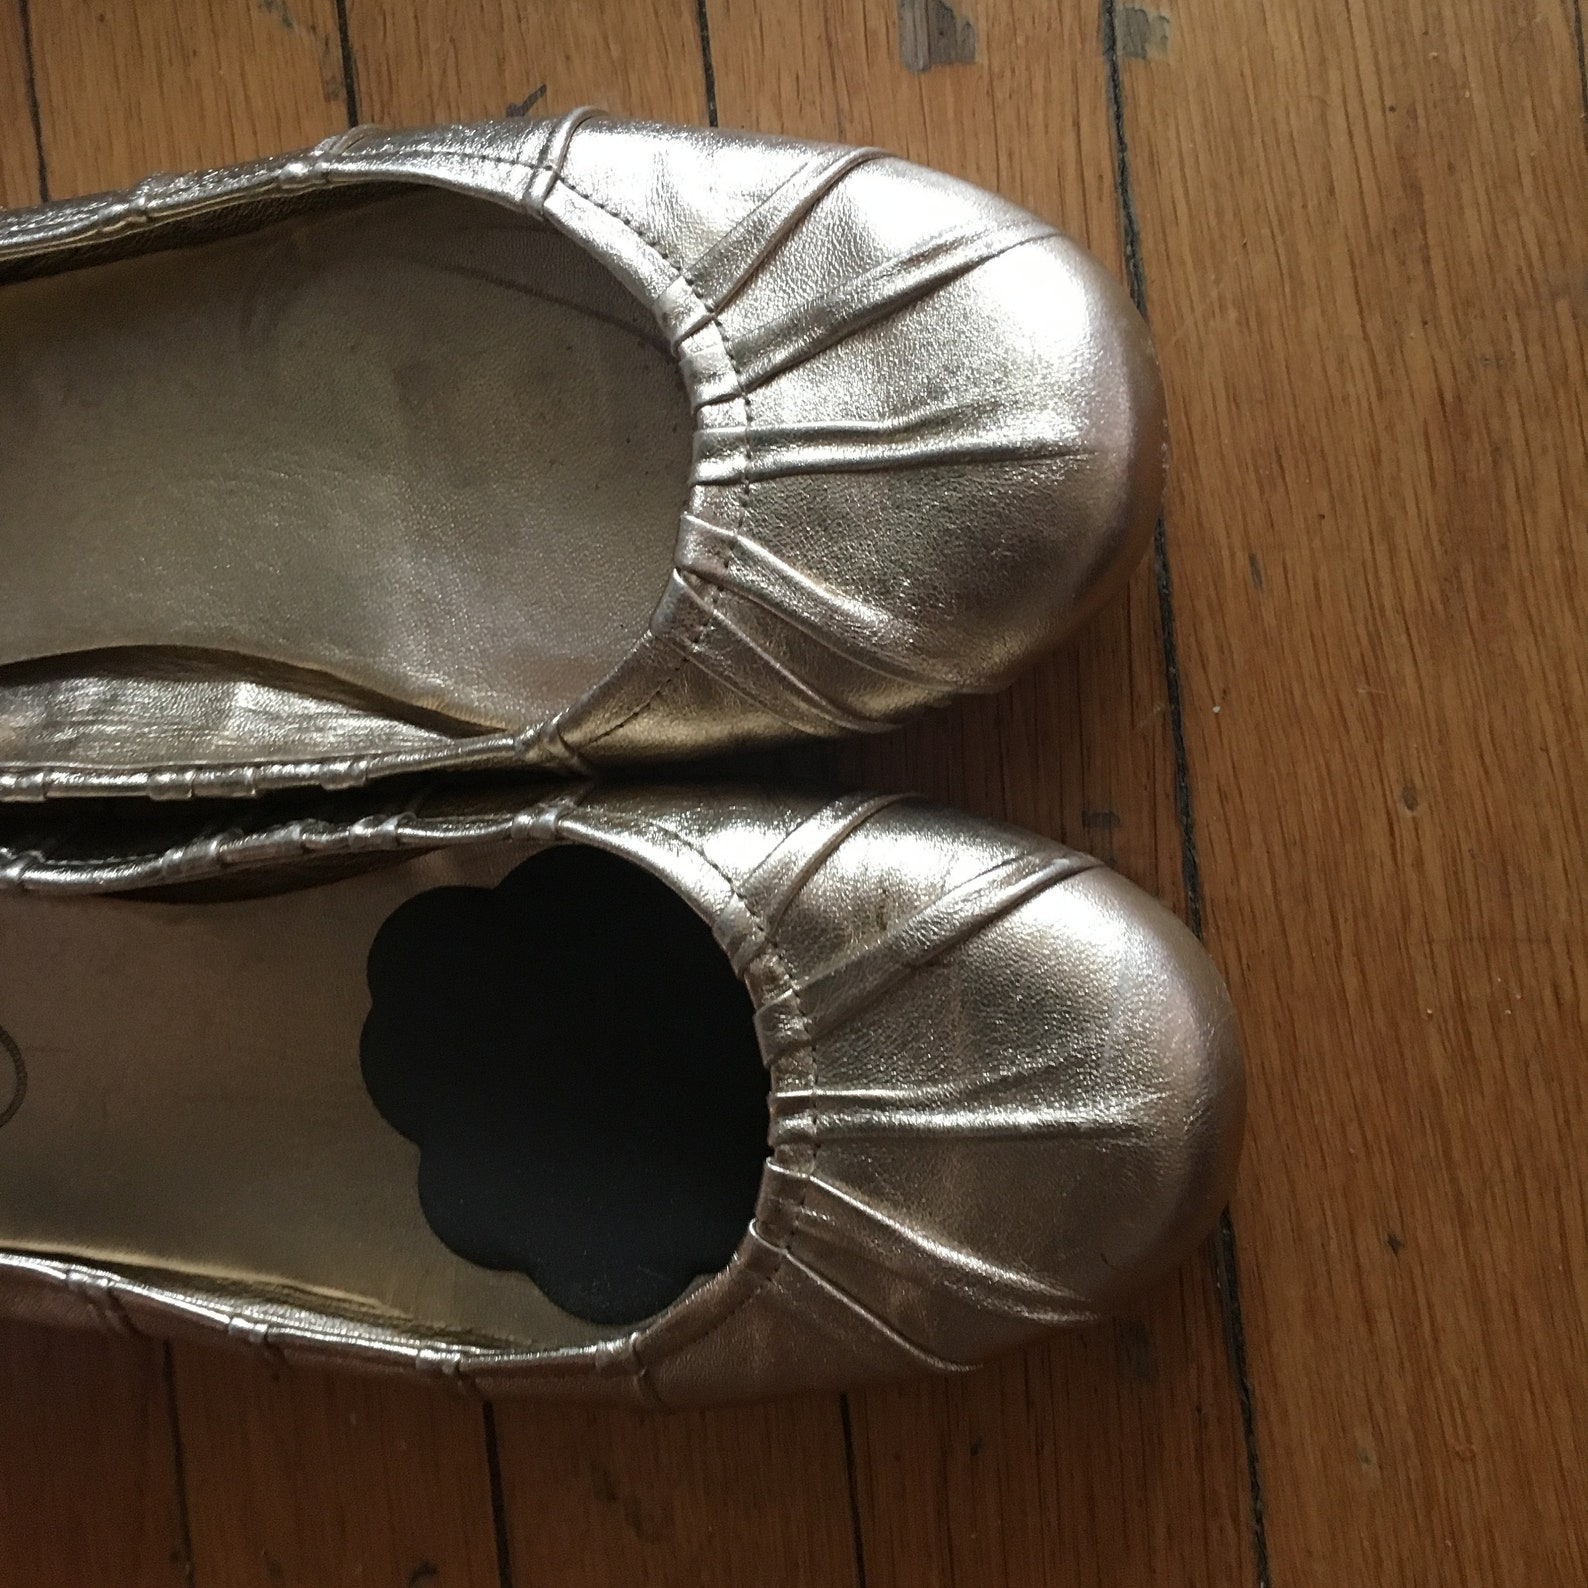 prada 100% authentic leather gold ballet shoes 8.5